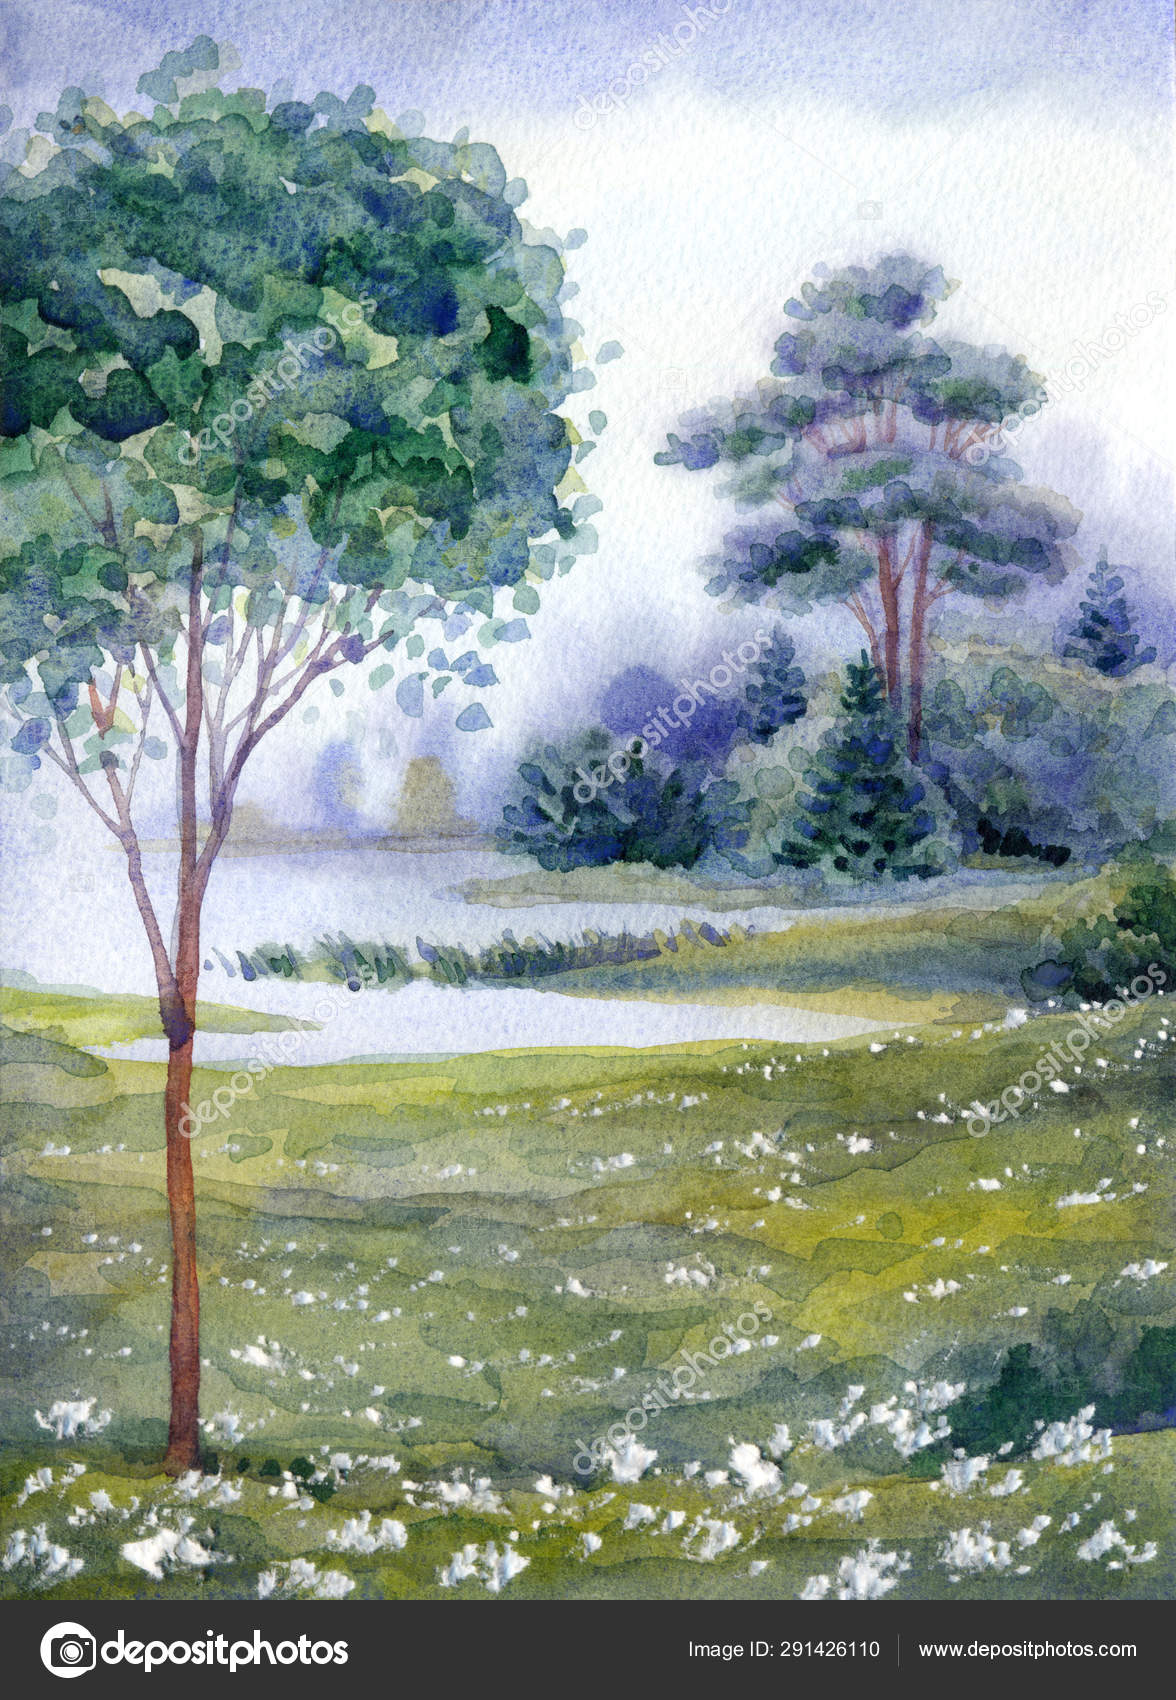 watercolor landscape forest near the lake stock photo c marinka 291426110 https depositphotos com 291426110 stock photo watercolor landscape forest near the html